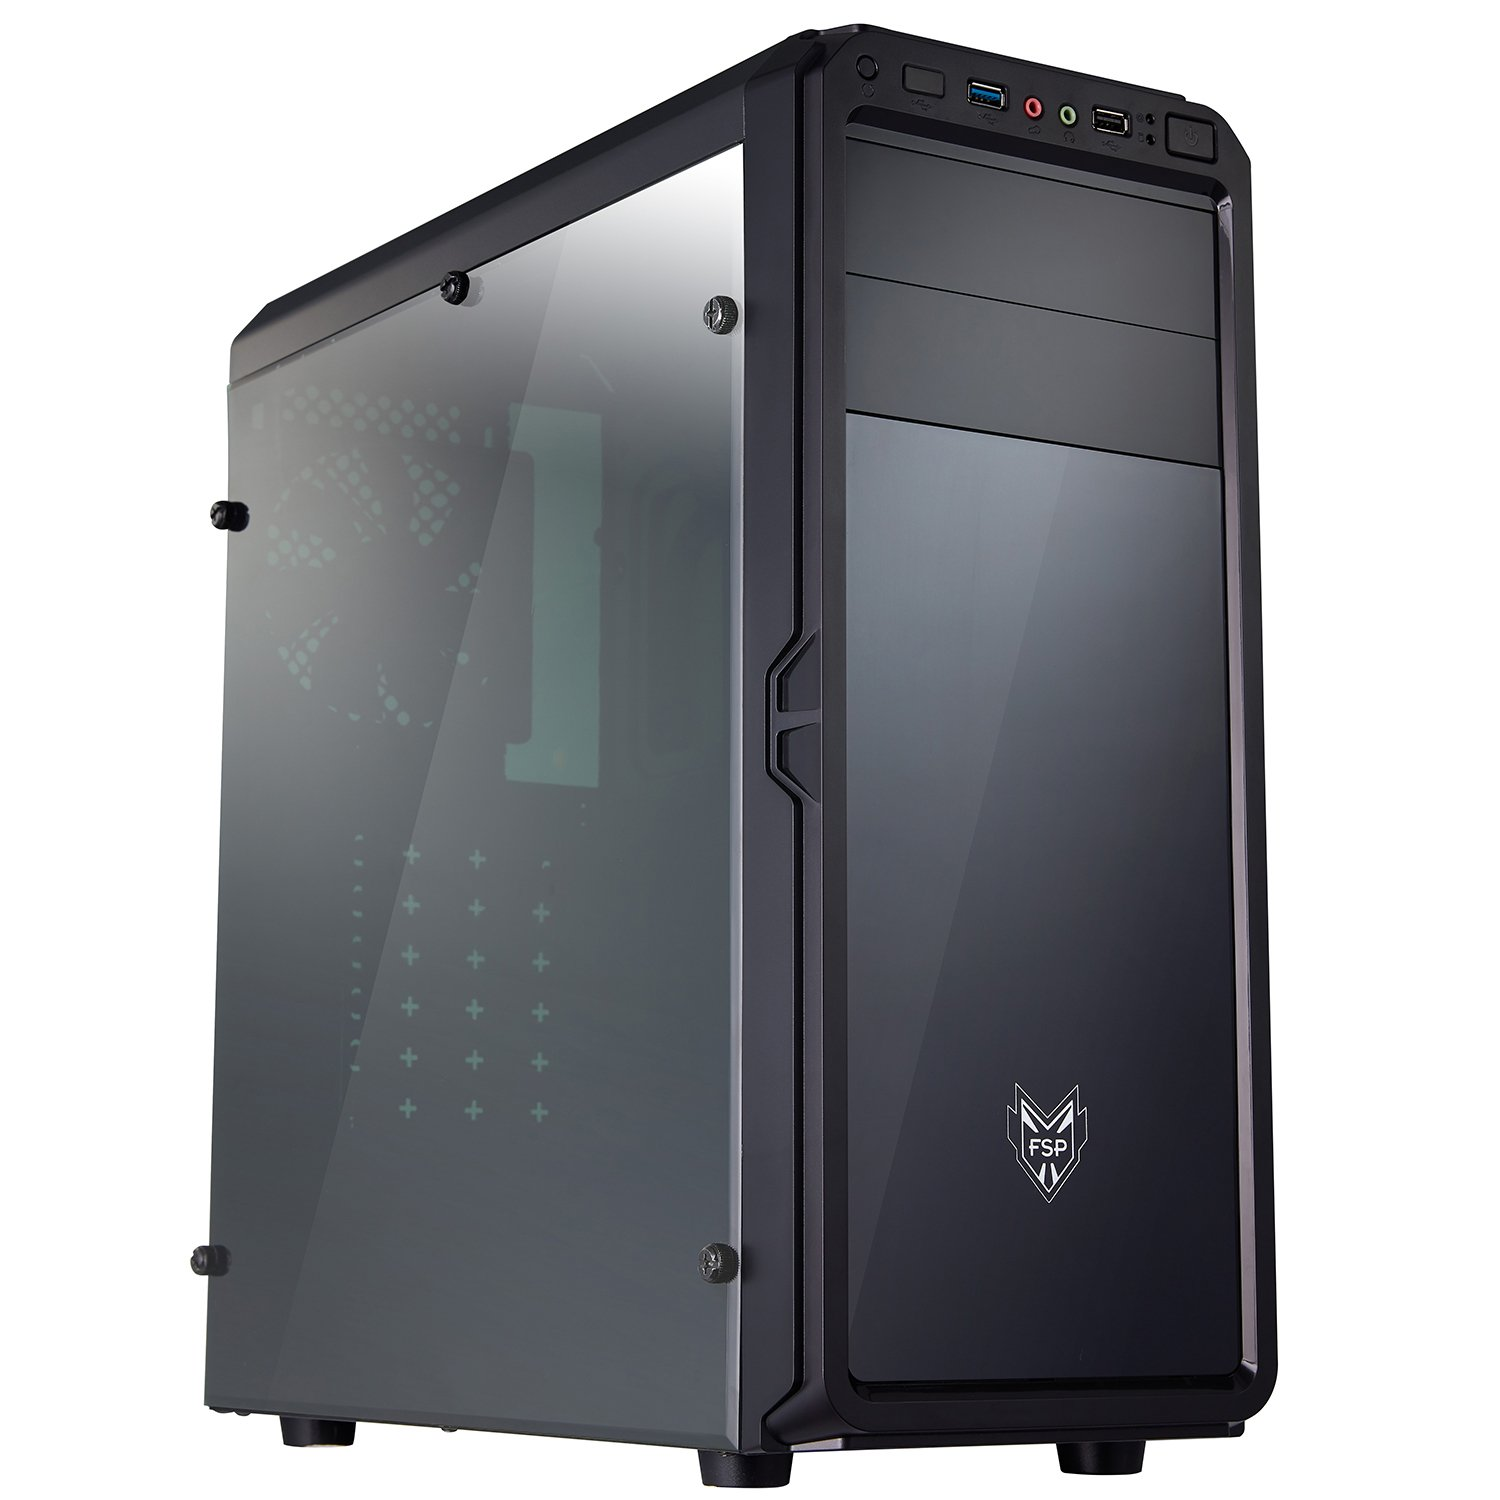 FSP ATX Mid Tower PC Computer Gaming Case Translucent Front & Side Window Panel (CMT120)